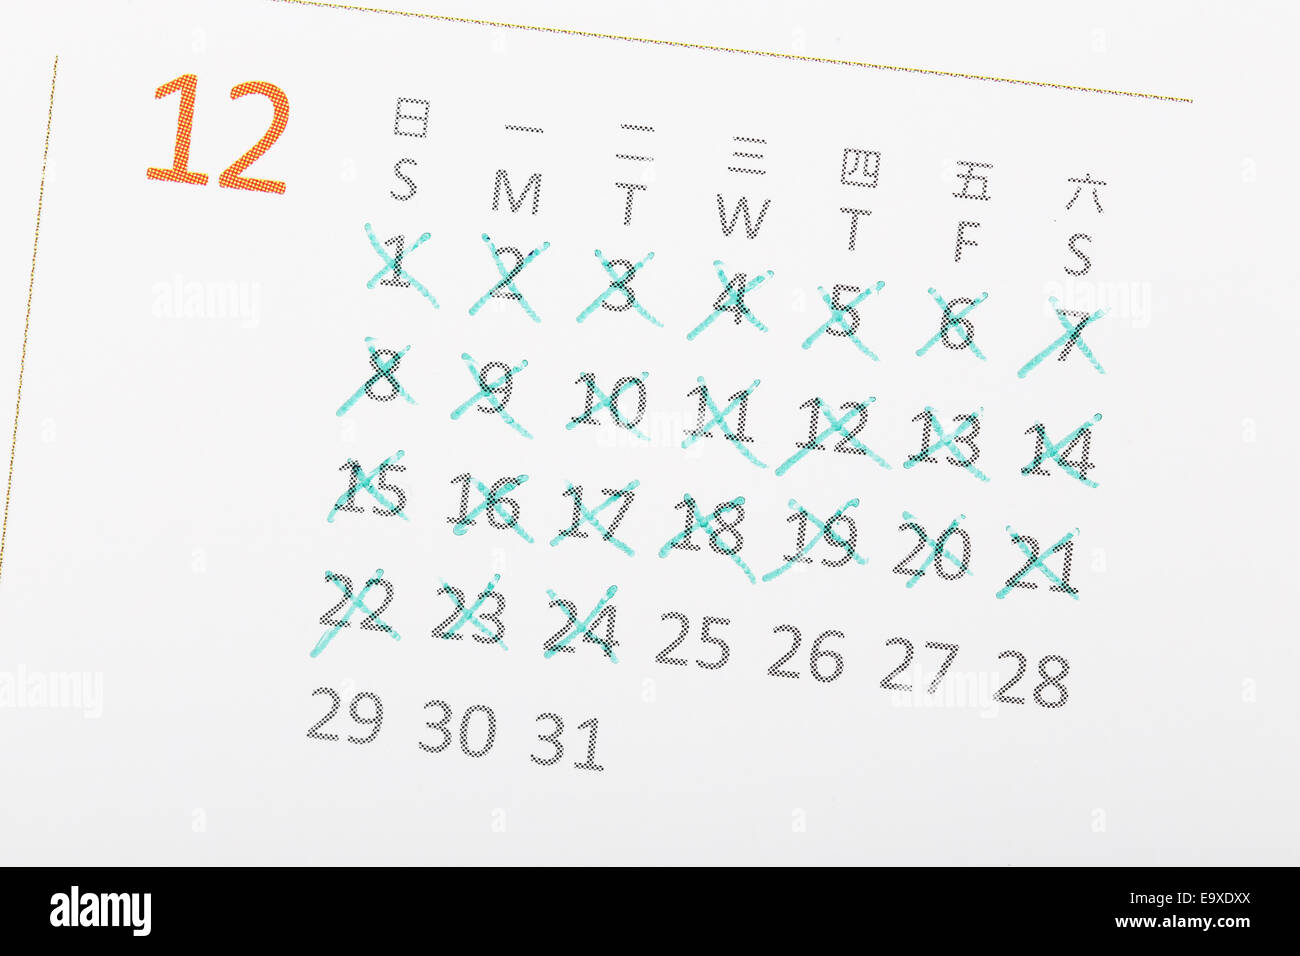 Days Until Christmas Stockfotos & Days Until Christmas Bilder - Alamy